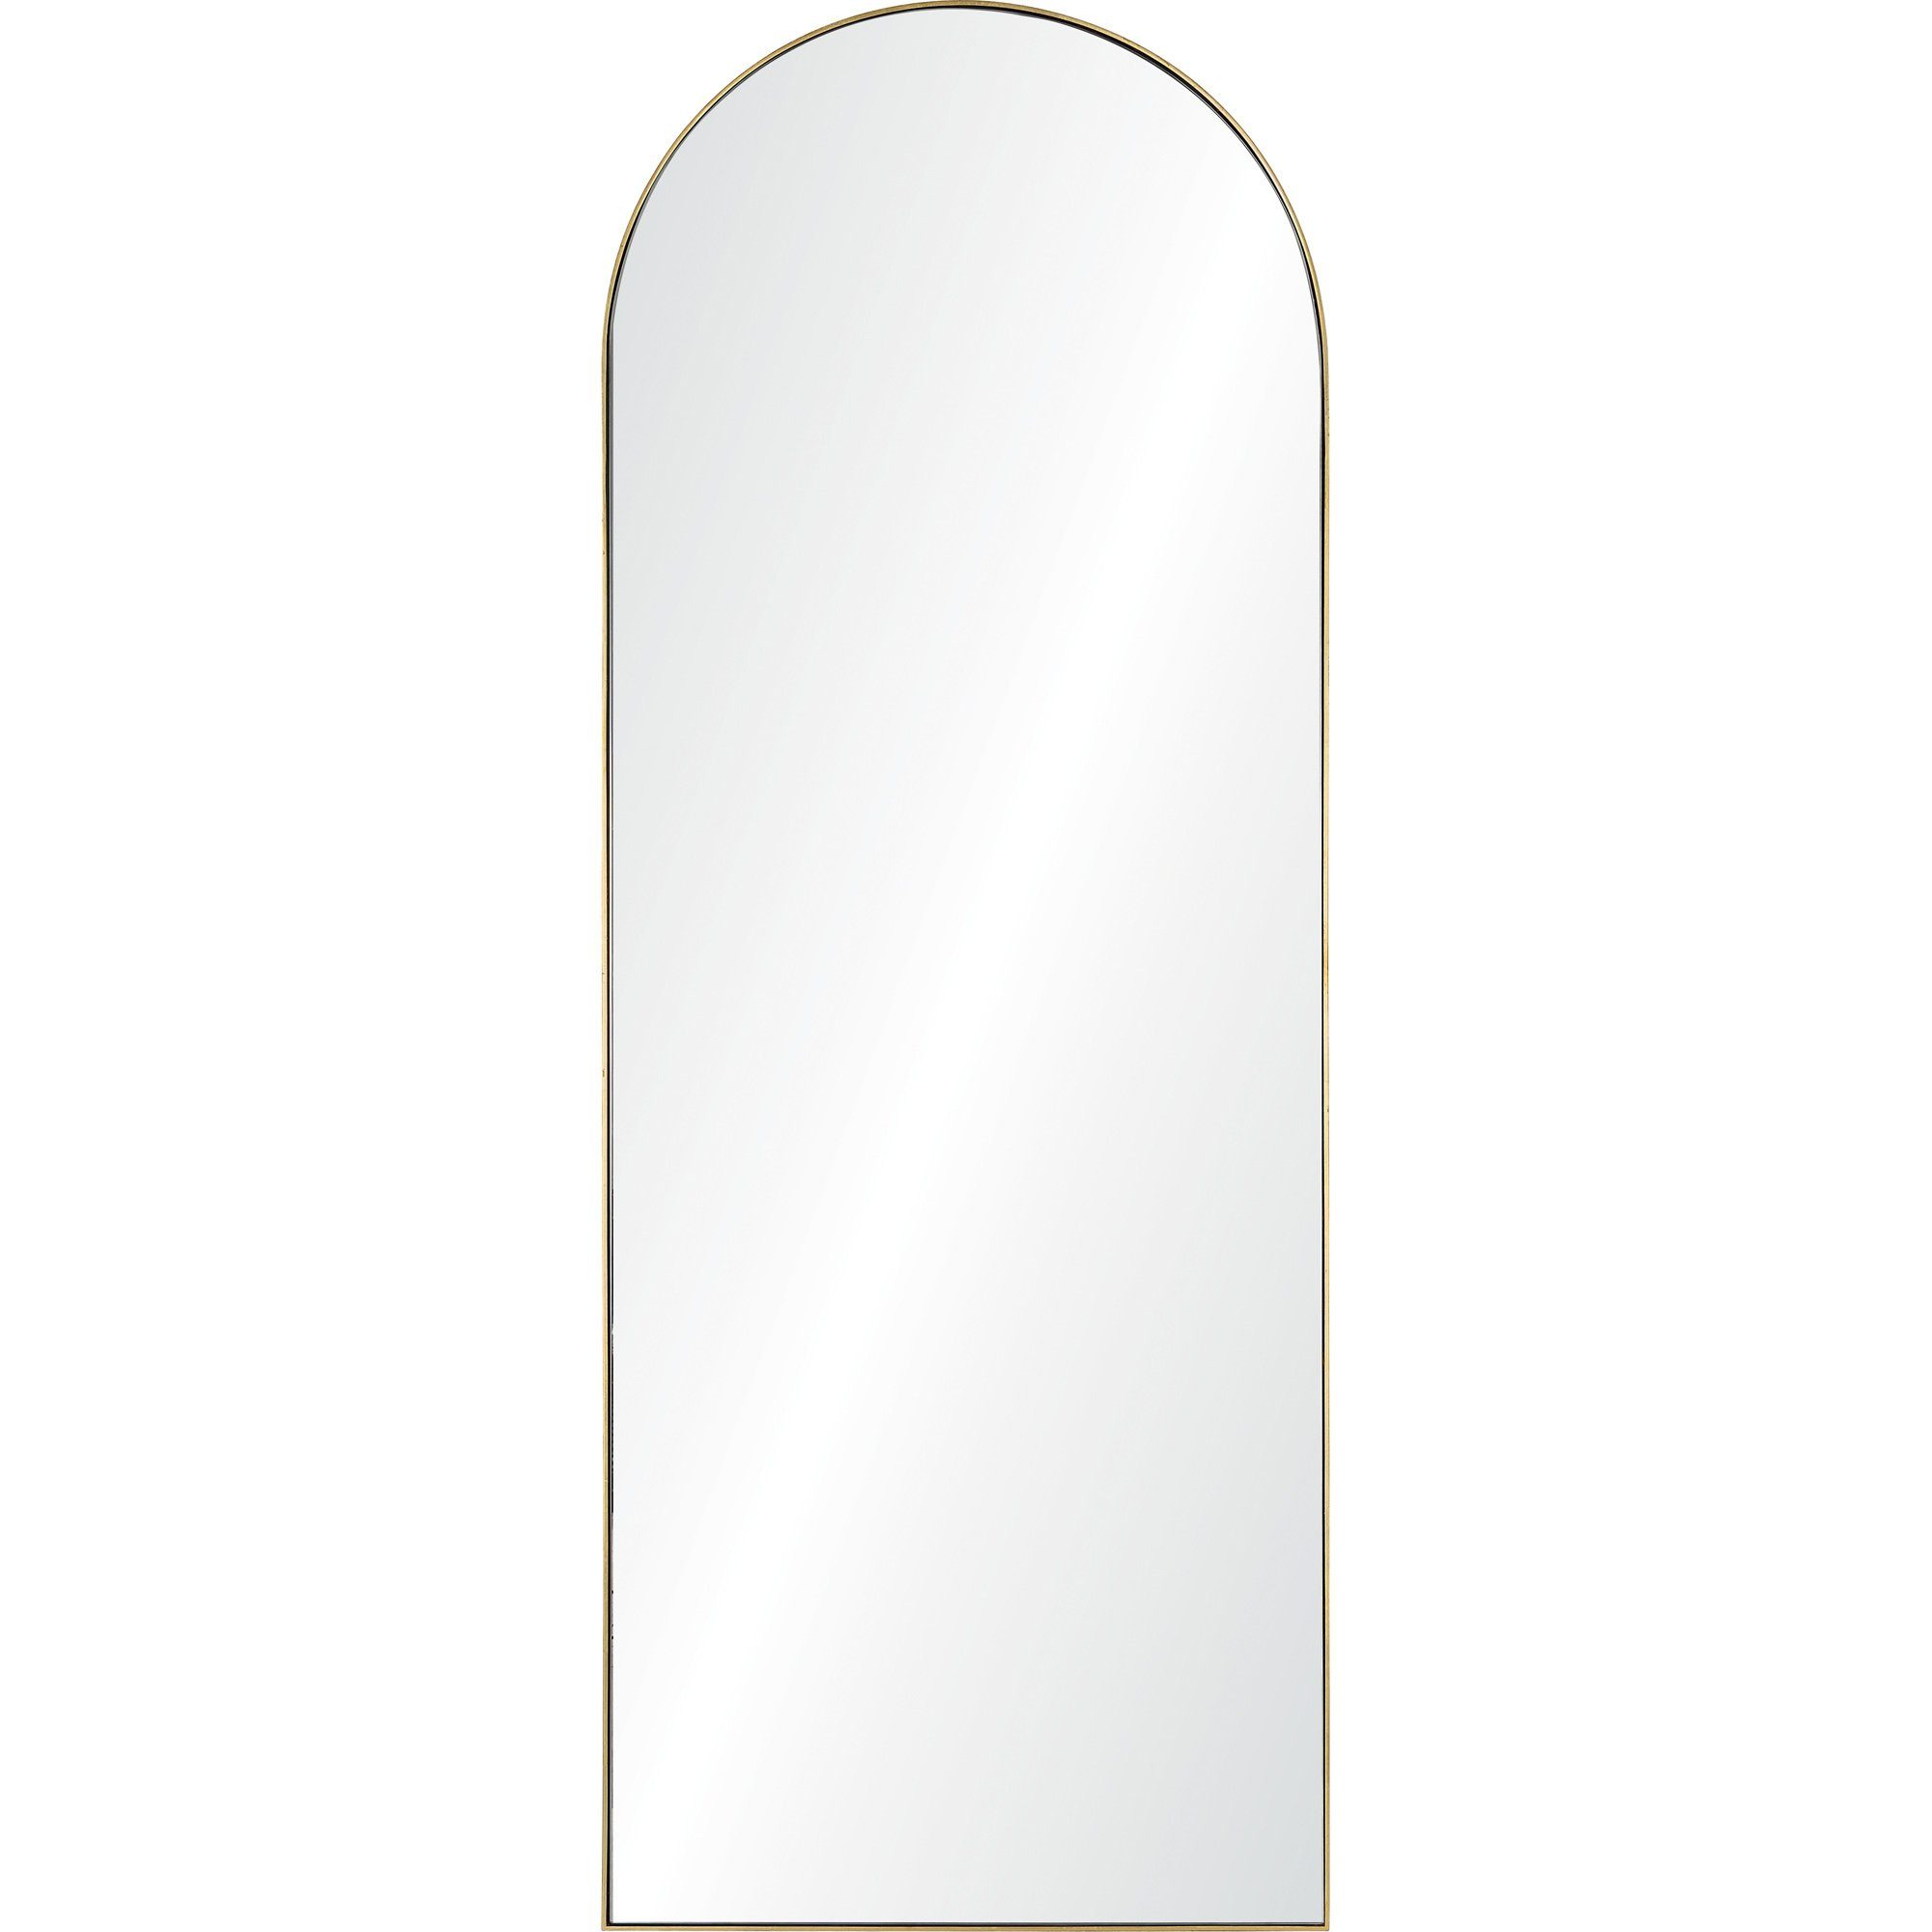 Thatcher Renwil Arched Floor Mirror with thin gold leaf frame full length rounded top